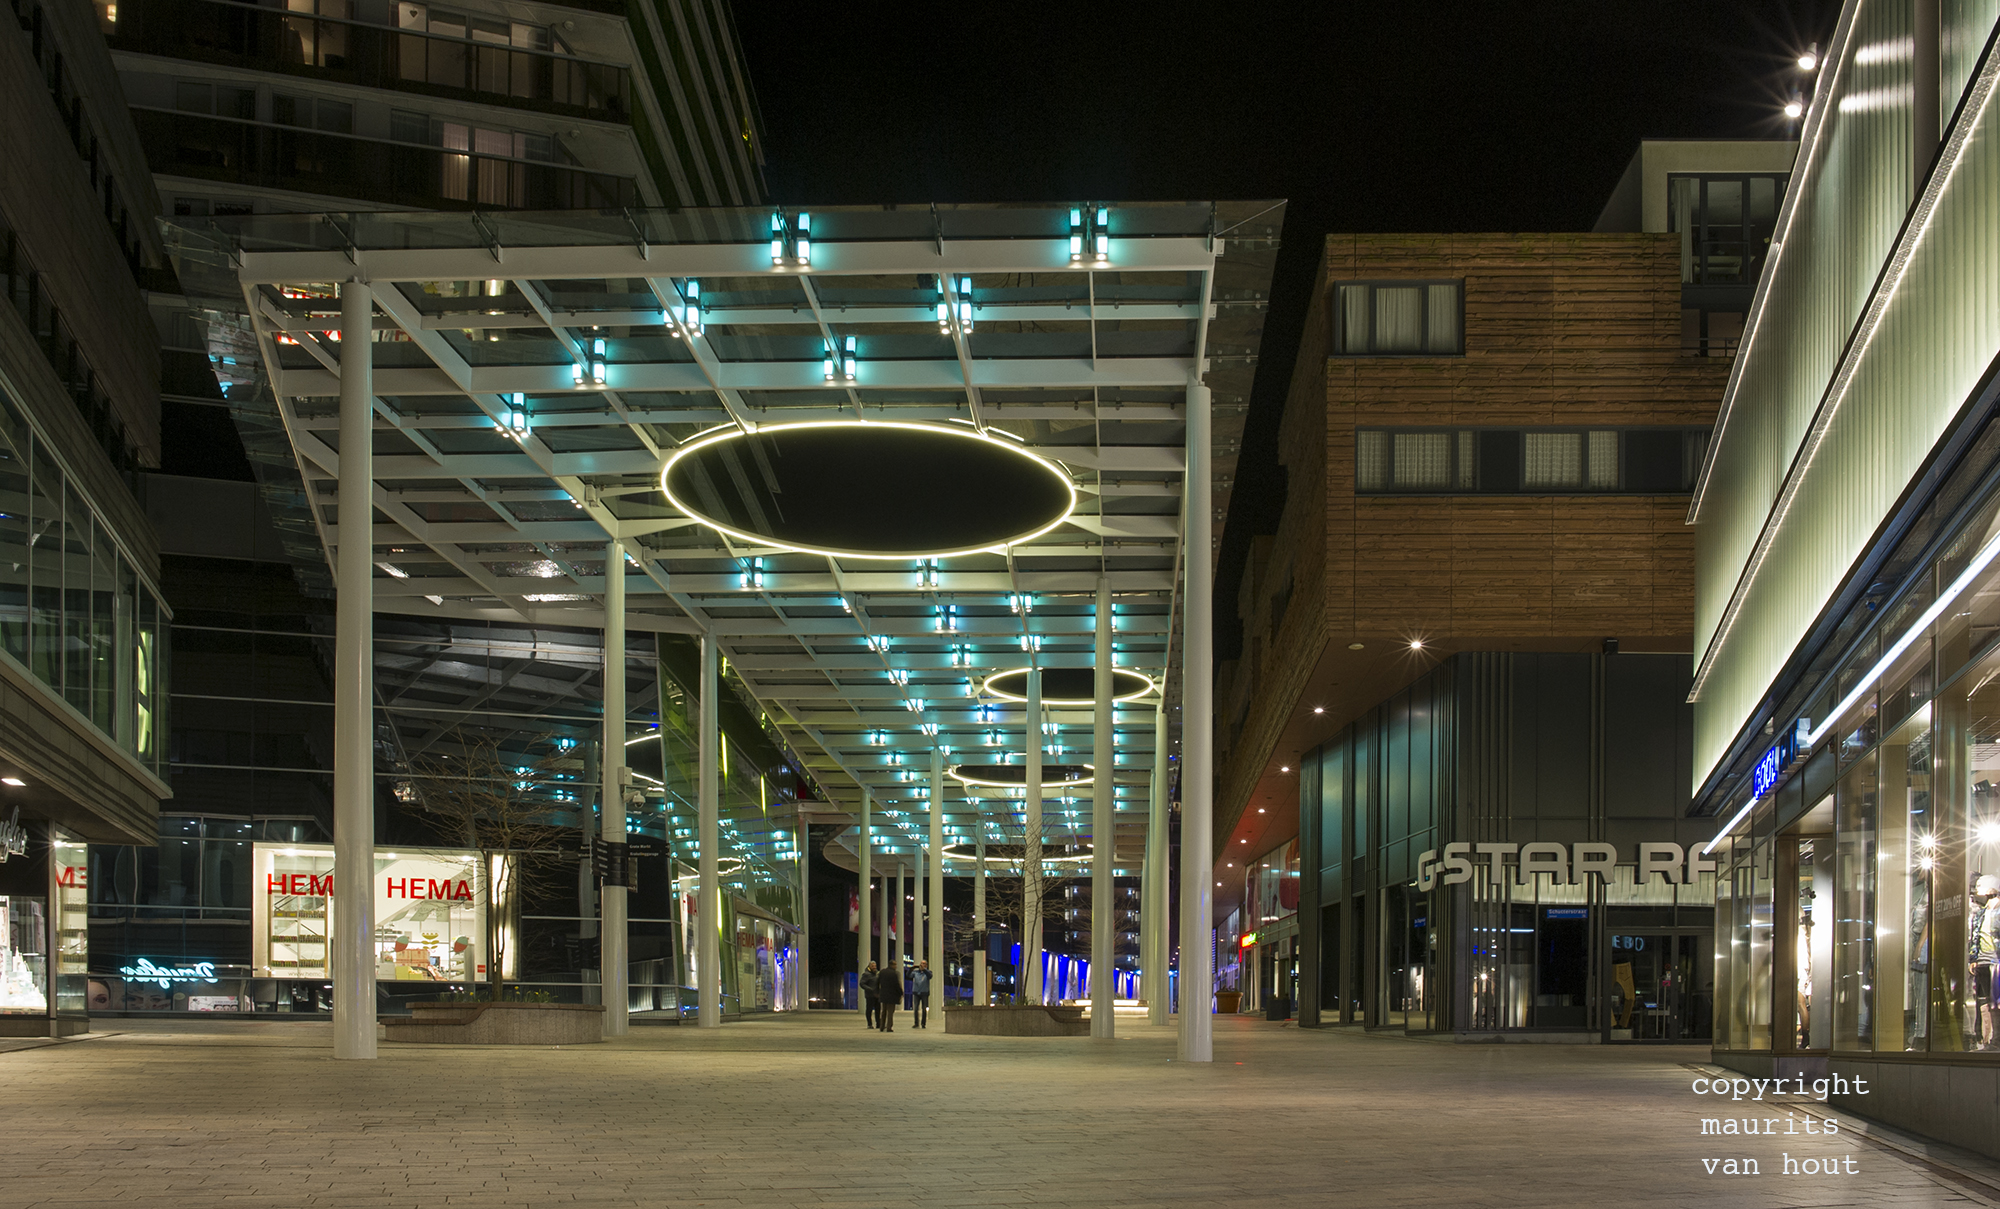 Almere city centre, architecture photography by Maurits van Hout